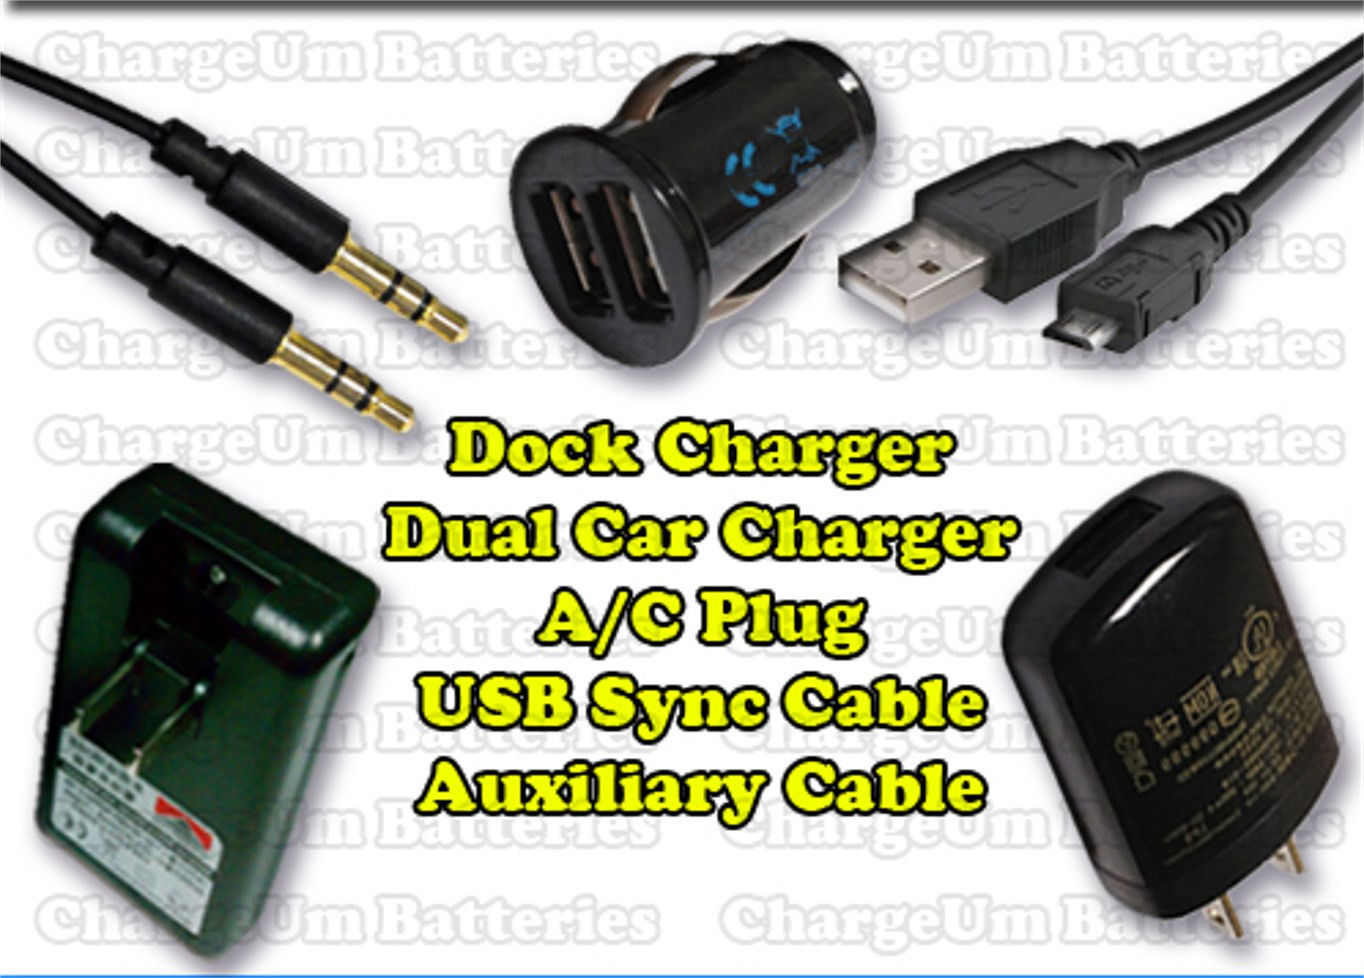 0Samsung Conquer D600 External + Car Charger + USB Cable & Auxiliary Cord + Plug